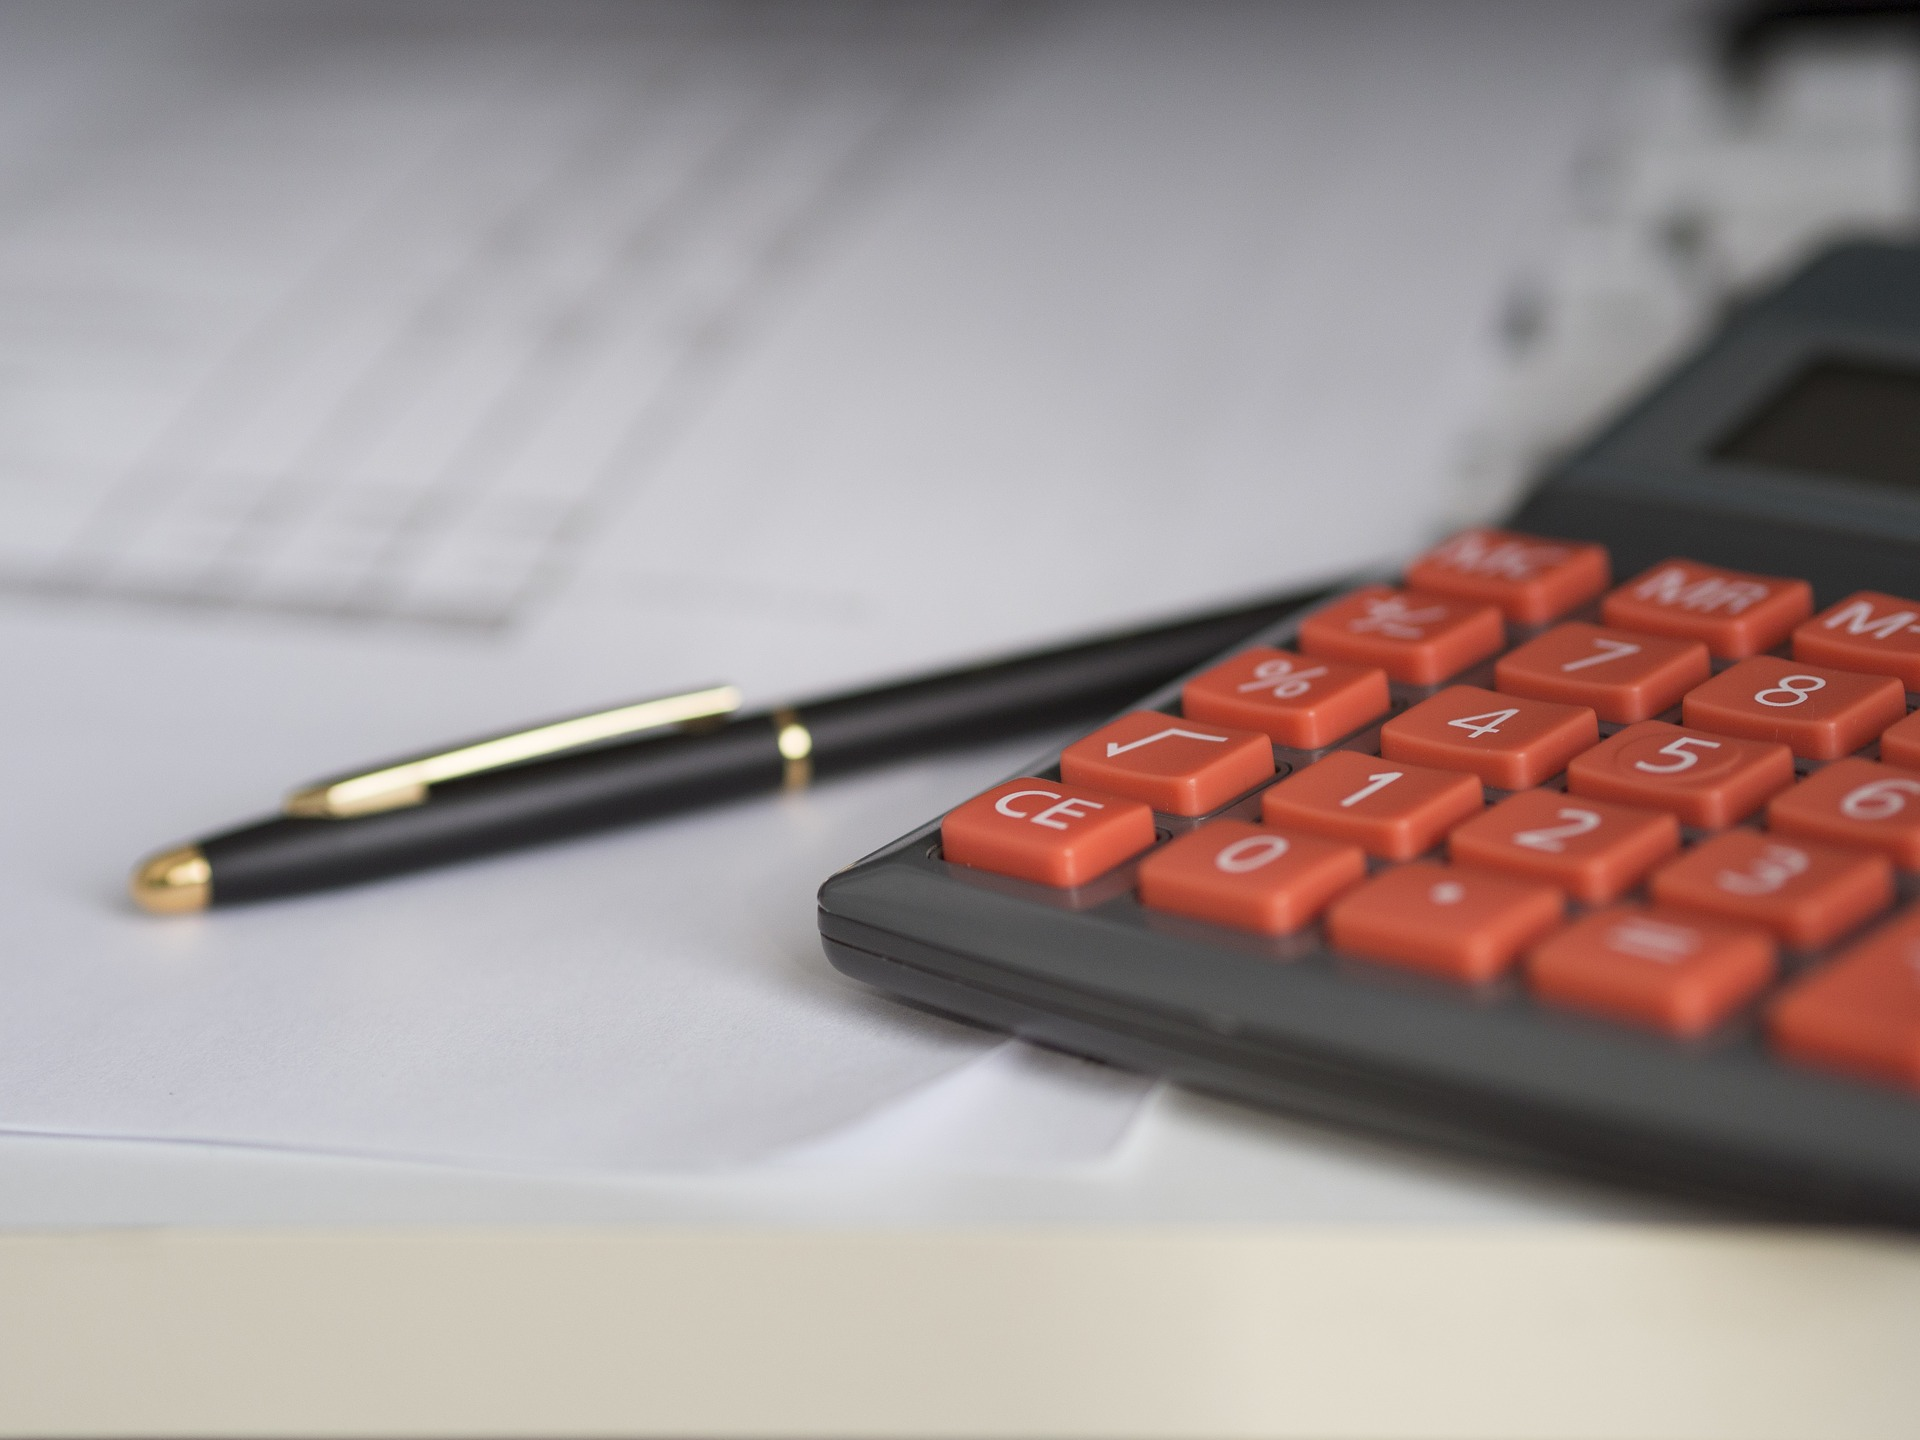 A calculator with red buttons on a paper with a pen